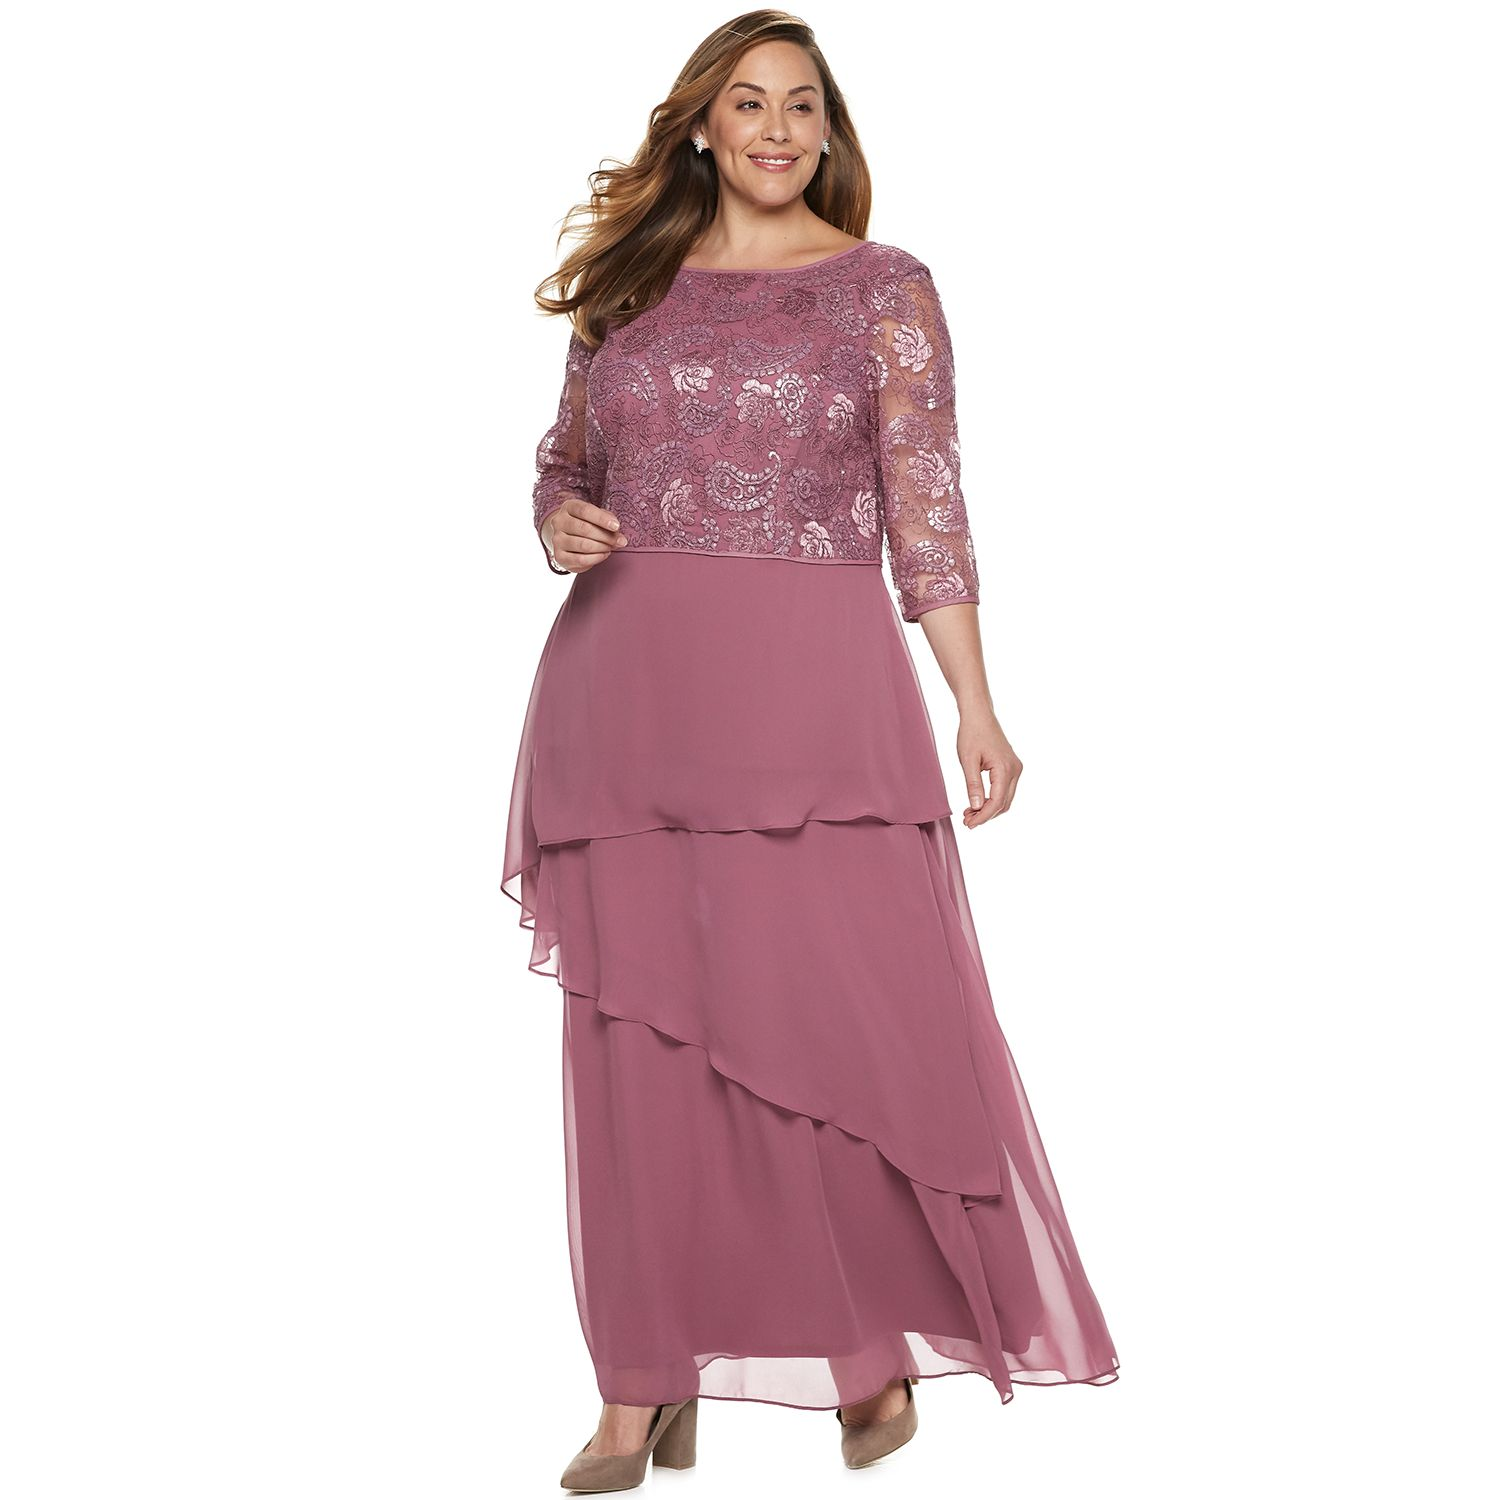 Maxi Dresses   Kohl s Plus Size Le Bos Tiered Chiffon Dress